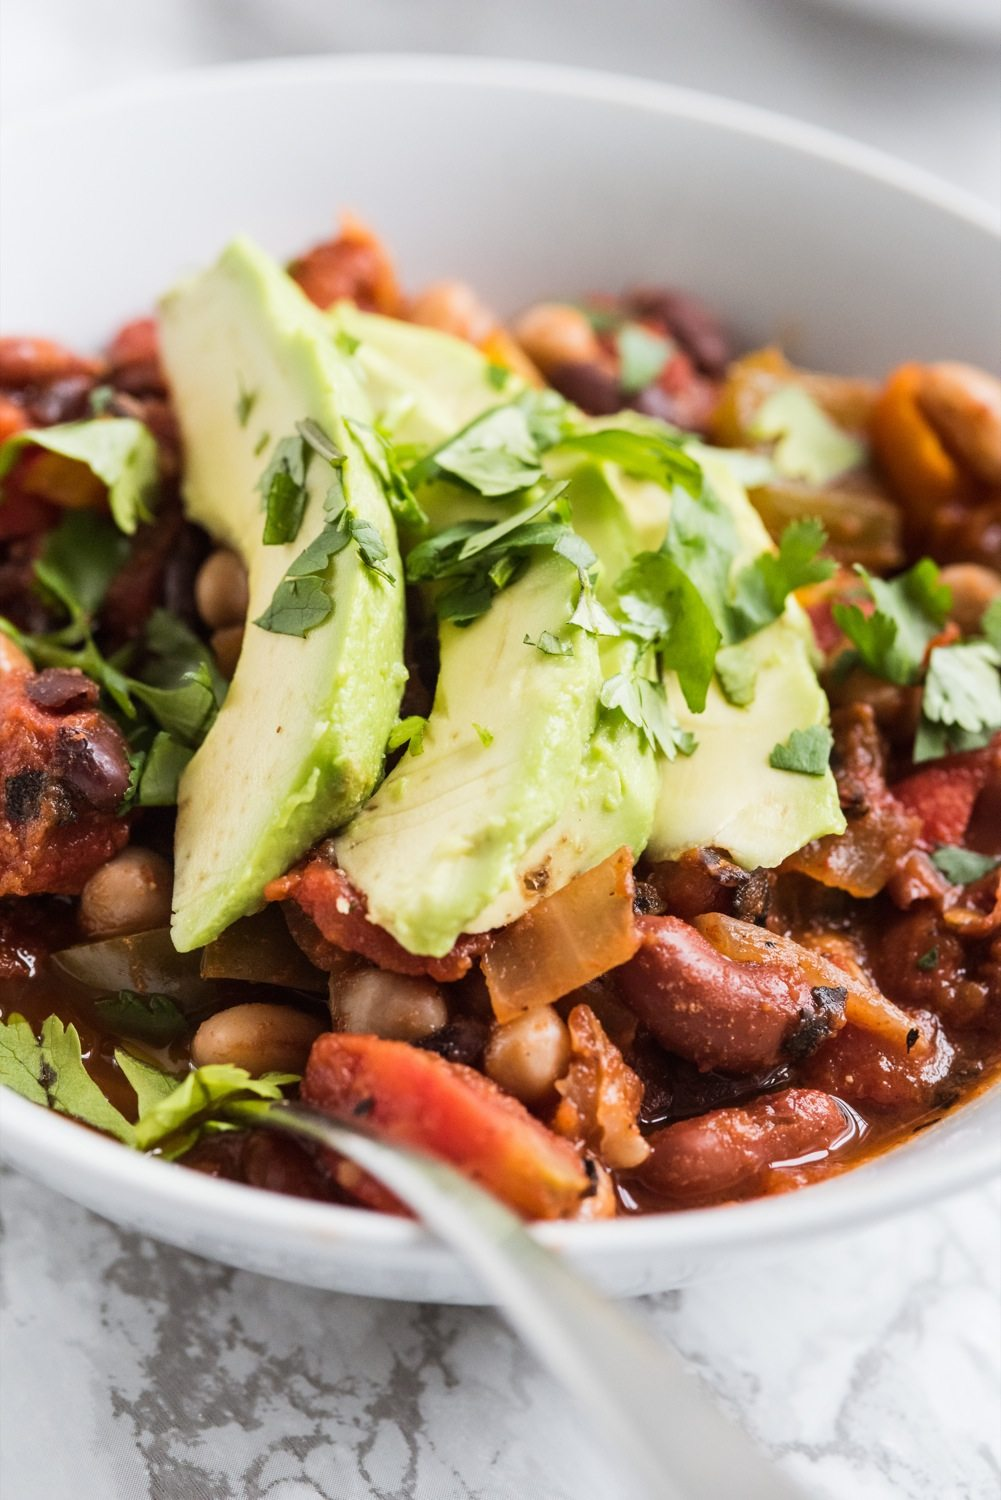 Easy Dinner Recipes: Four Bean Veggie Chili